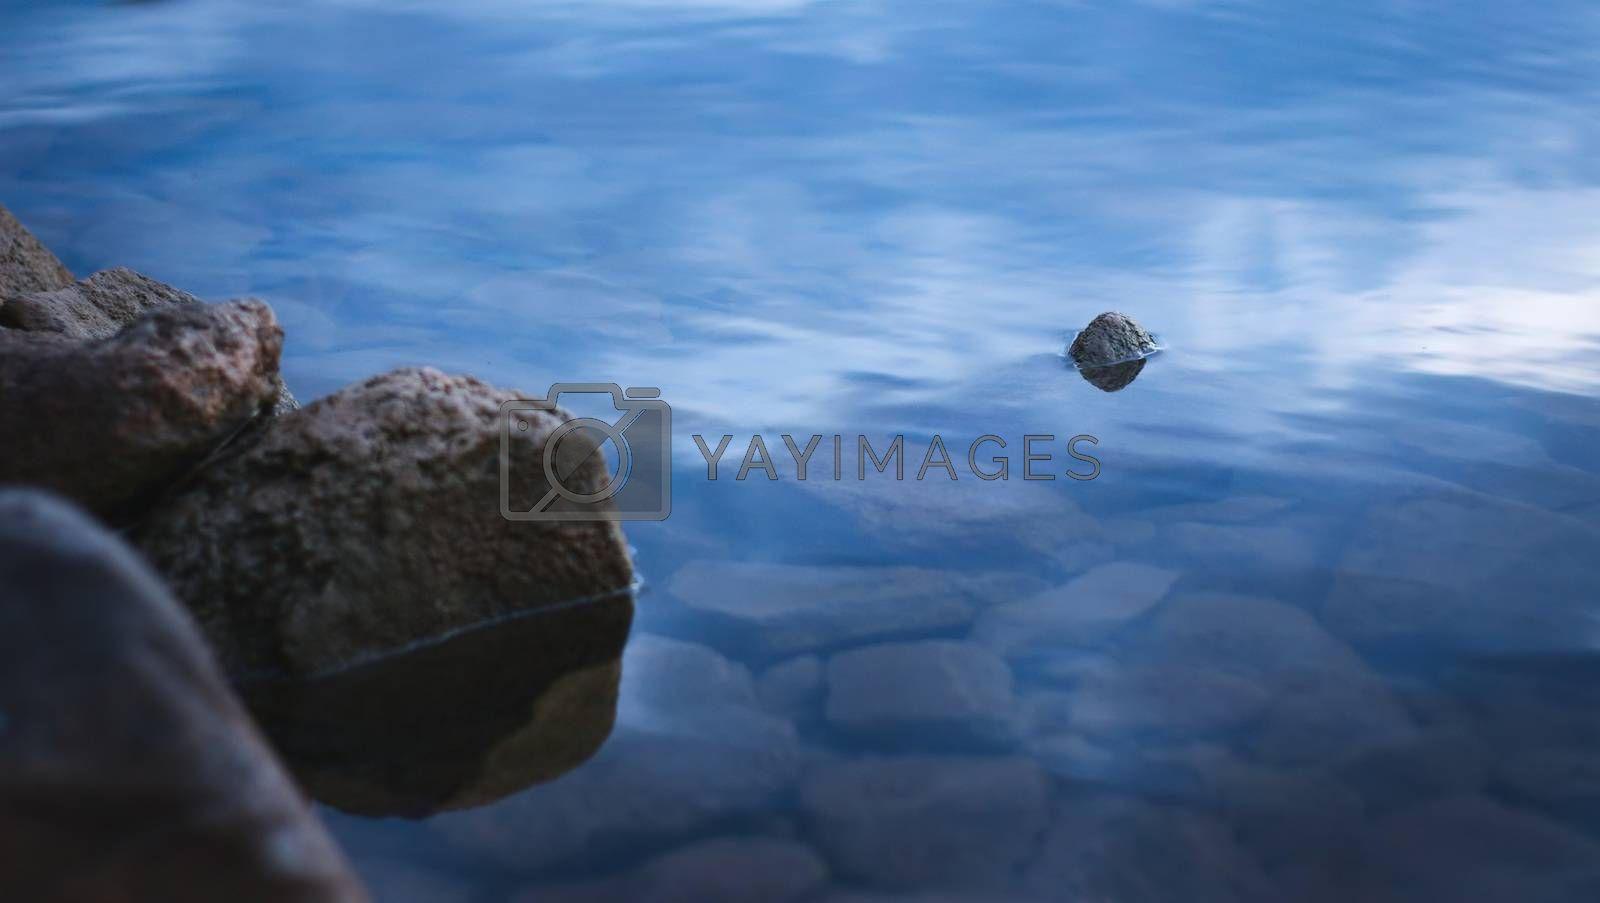 Royalty free image of Natural stones on the shore of a lake at dusk. by hernan_hyper